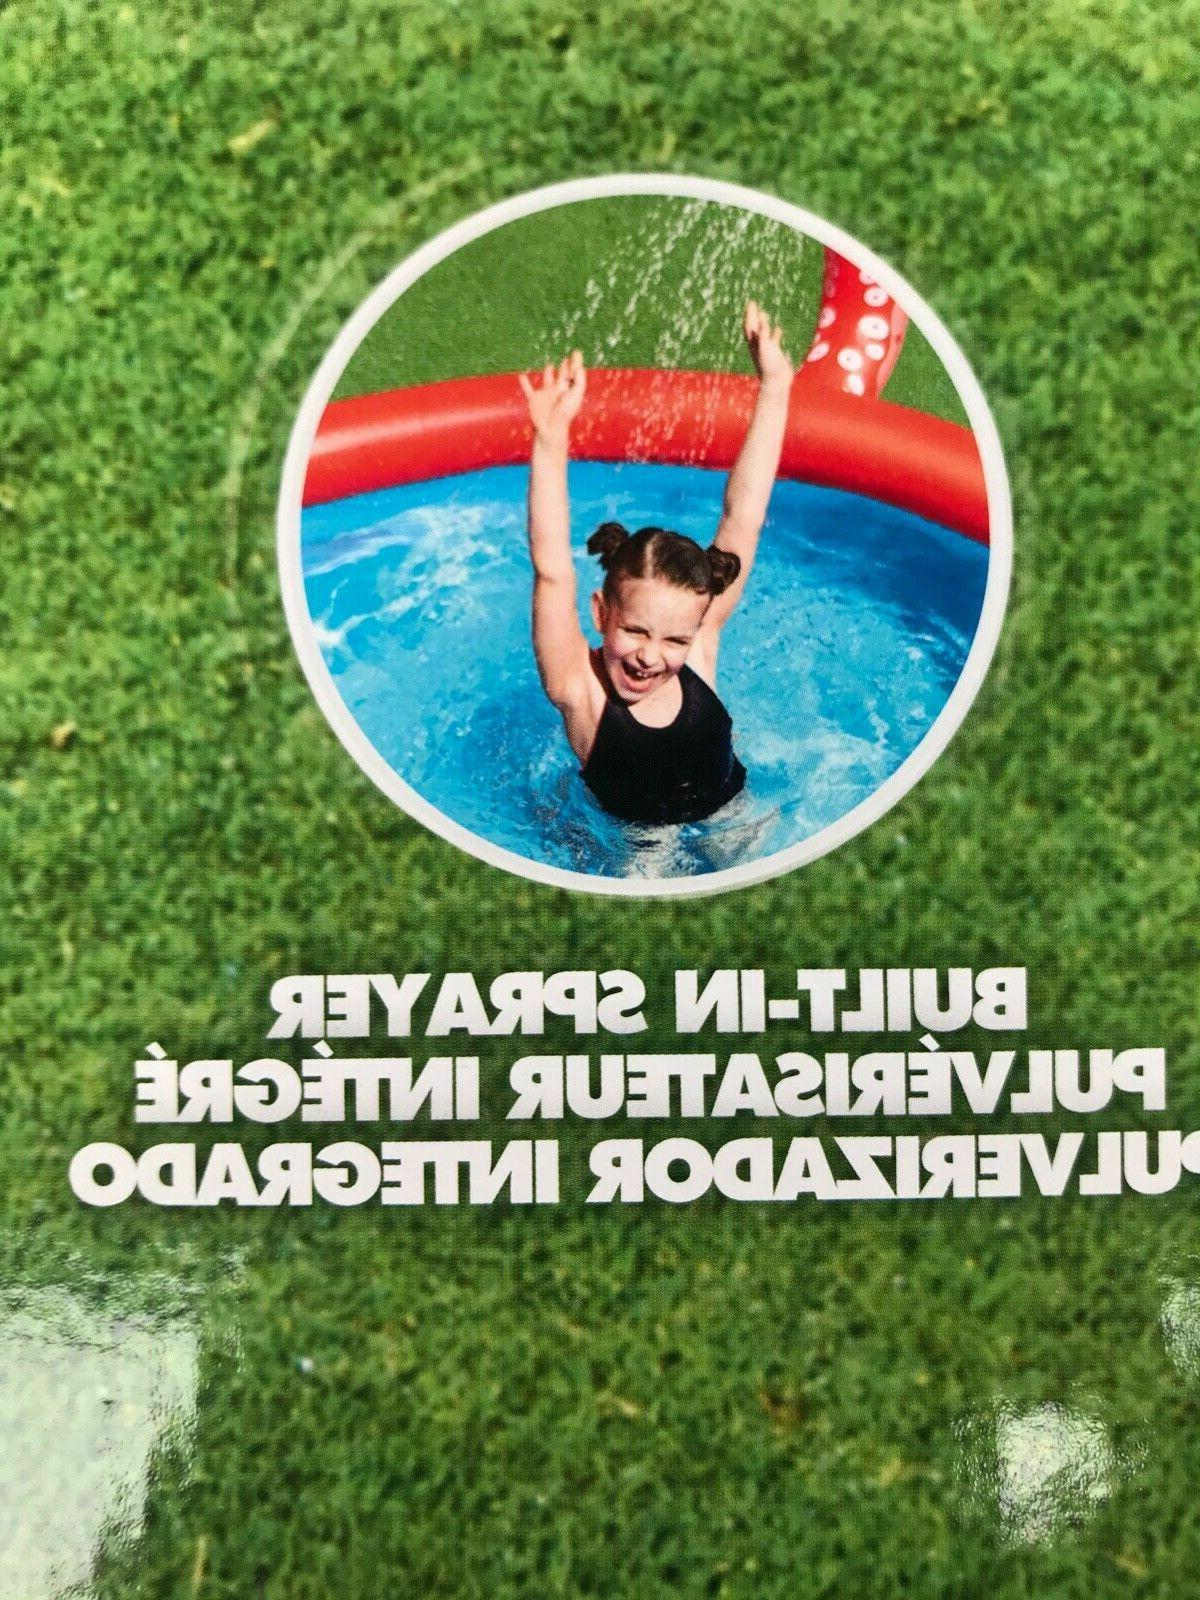 Large Inflatable Pool for Kids Spray by H2O